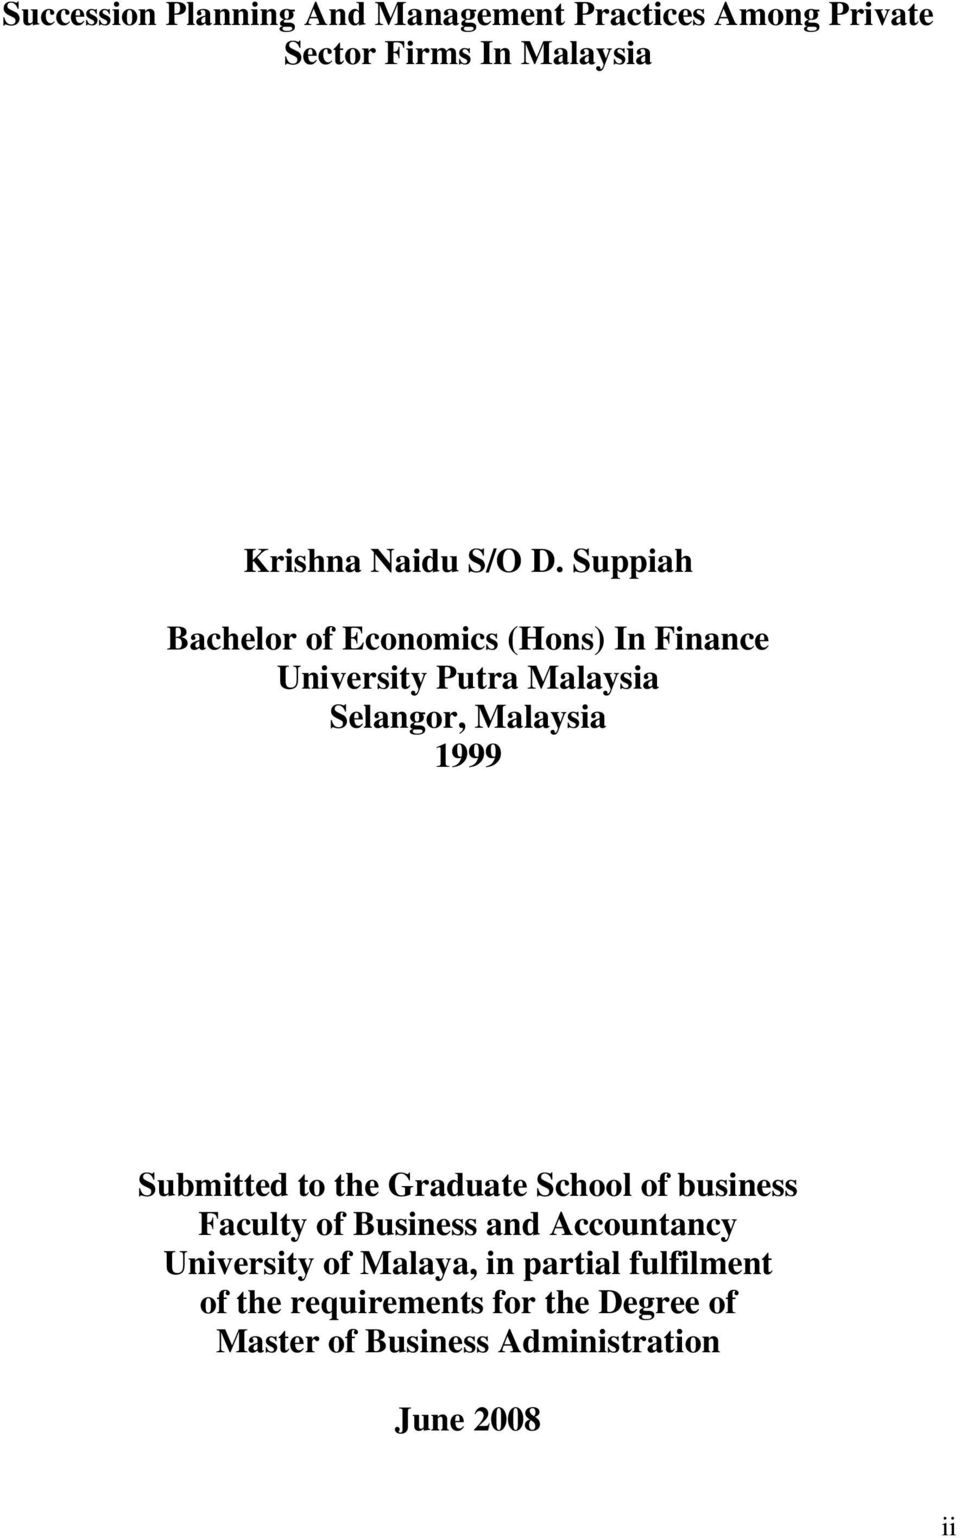 Submitted to the Graduate School of business Faculty of Business and Accountancy University of Malaya,